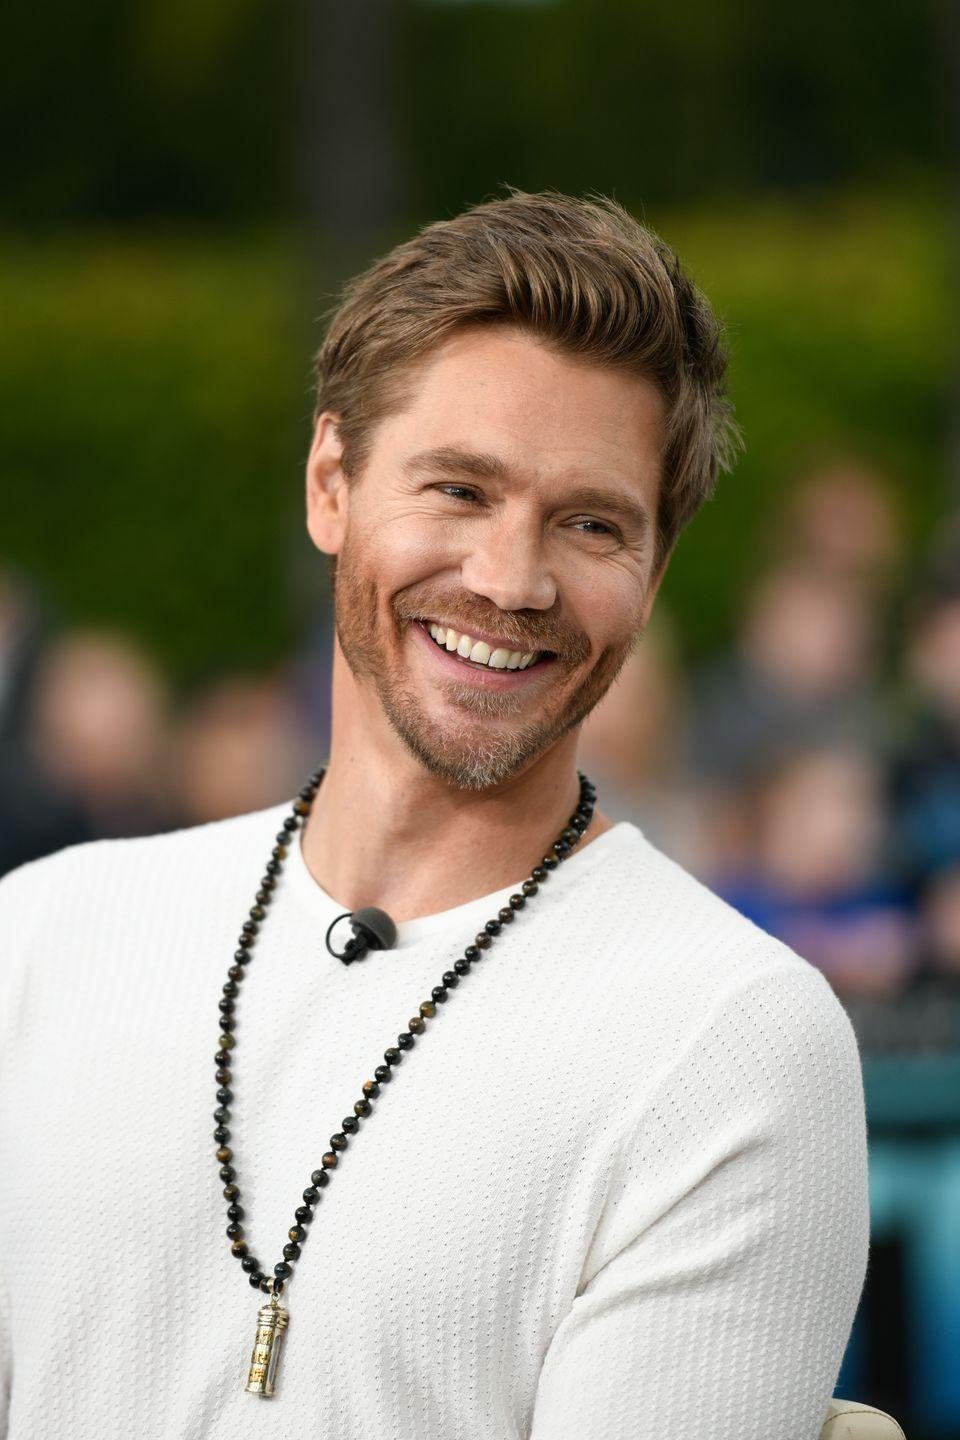 <p>Now 38, Murray continues his heartthrob status, starring in a series of Hallmark Channel original rom-coms, tossing in an occasional recurring role on CW's <em>Riverdale</em>.</p>